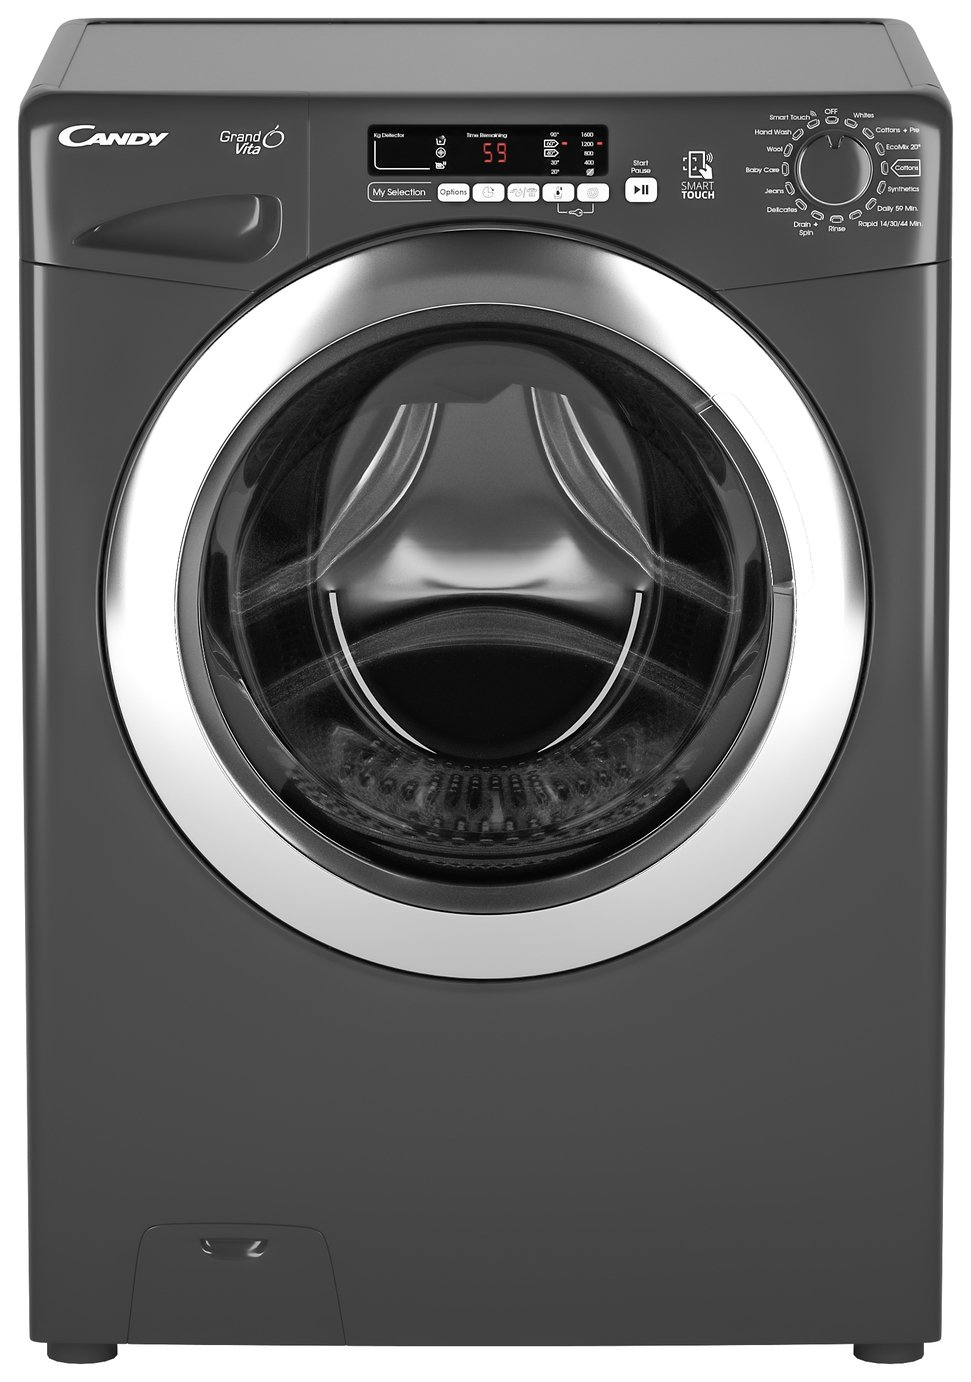 Candy GVS1410DC3R 10KG 1400 Spin Washing Machine - Graphite